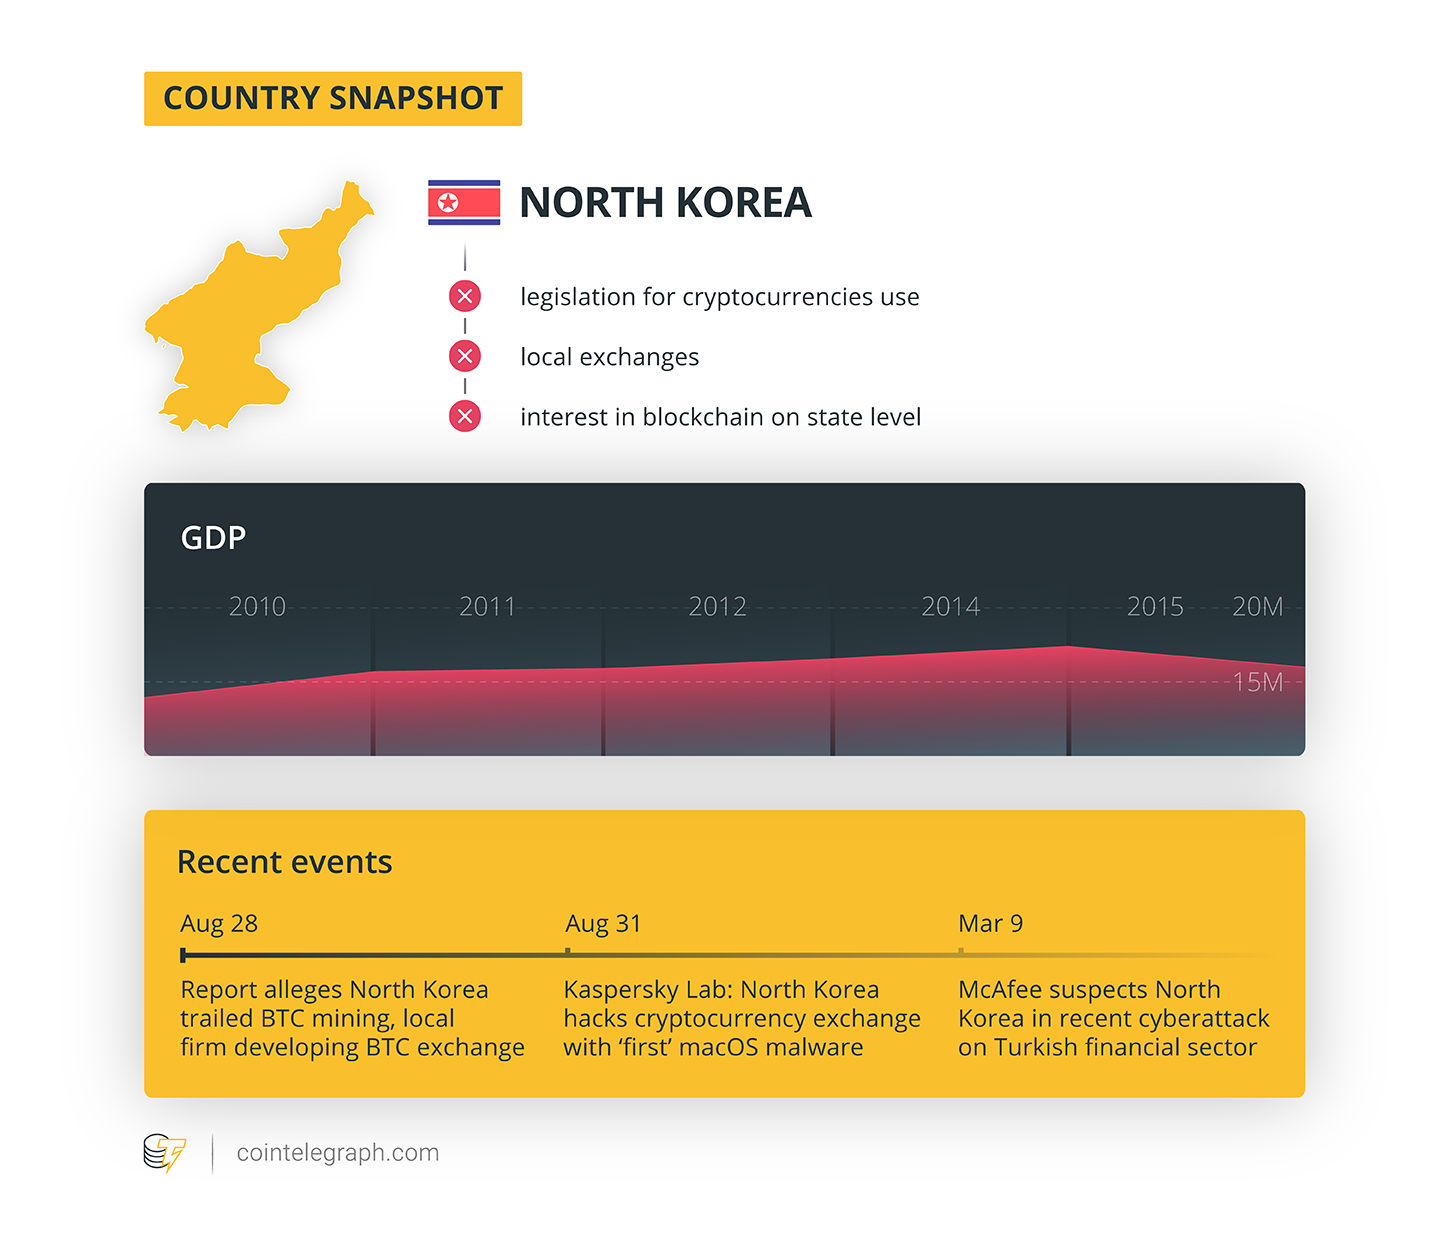 Country snapshot (North Korea)